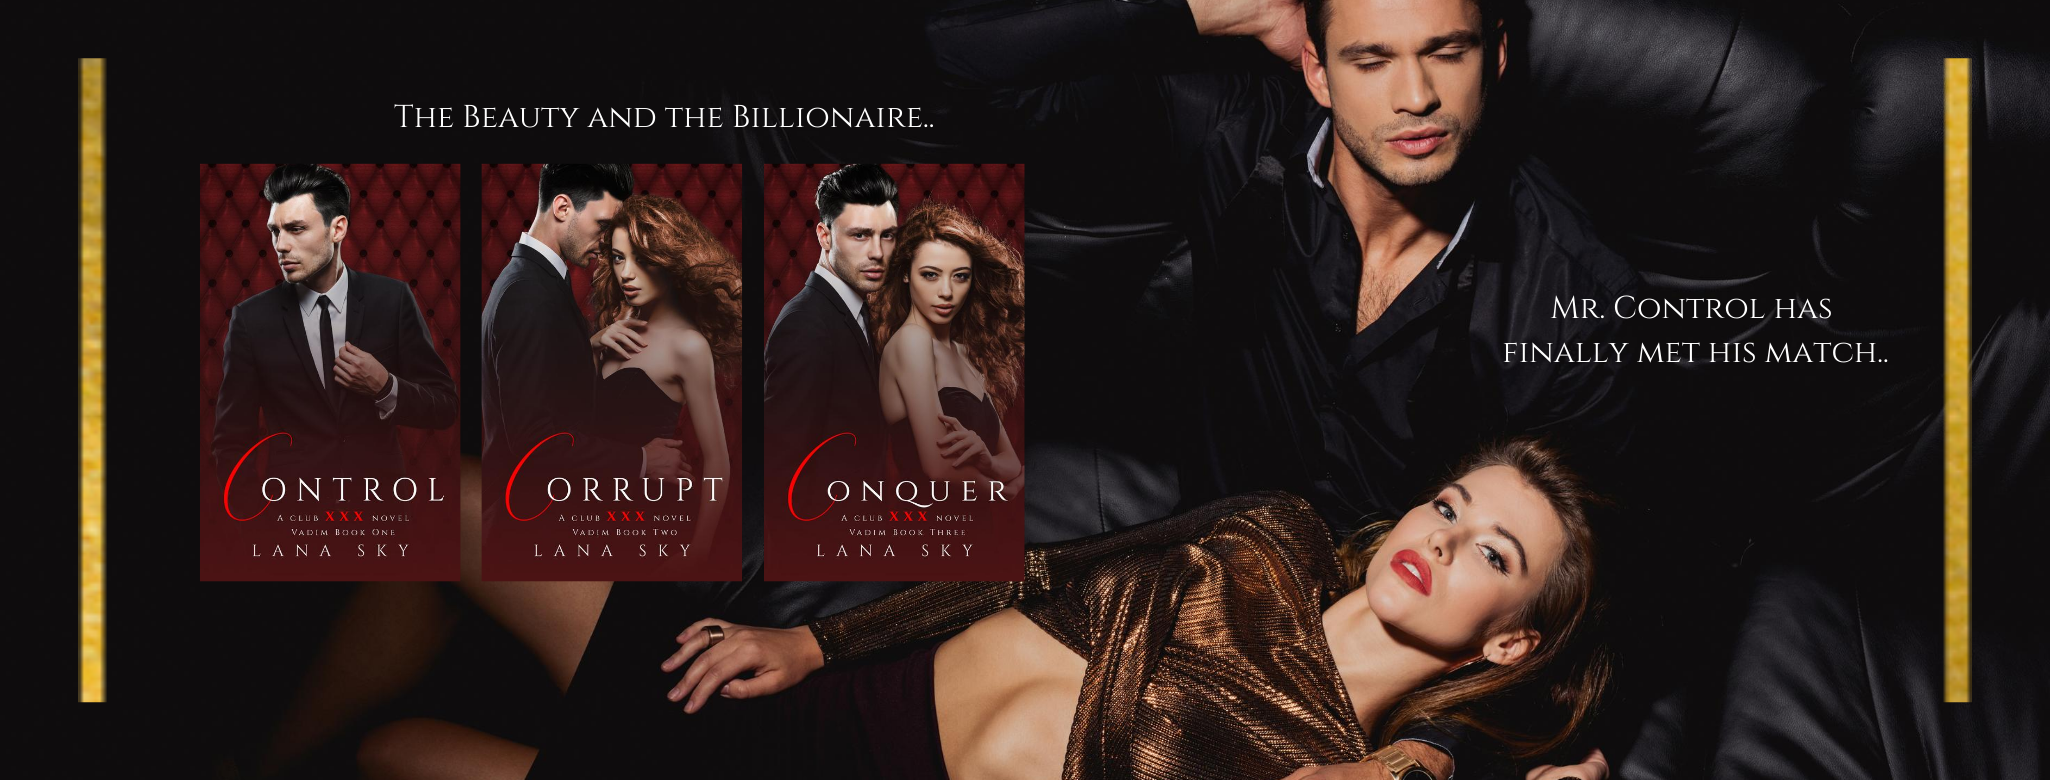 The Beauty and the Billionaire. Mr. Cont